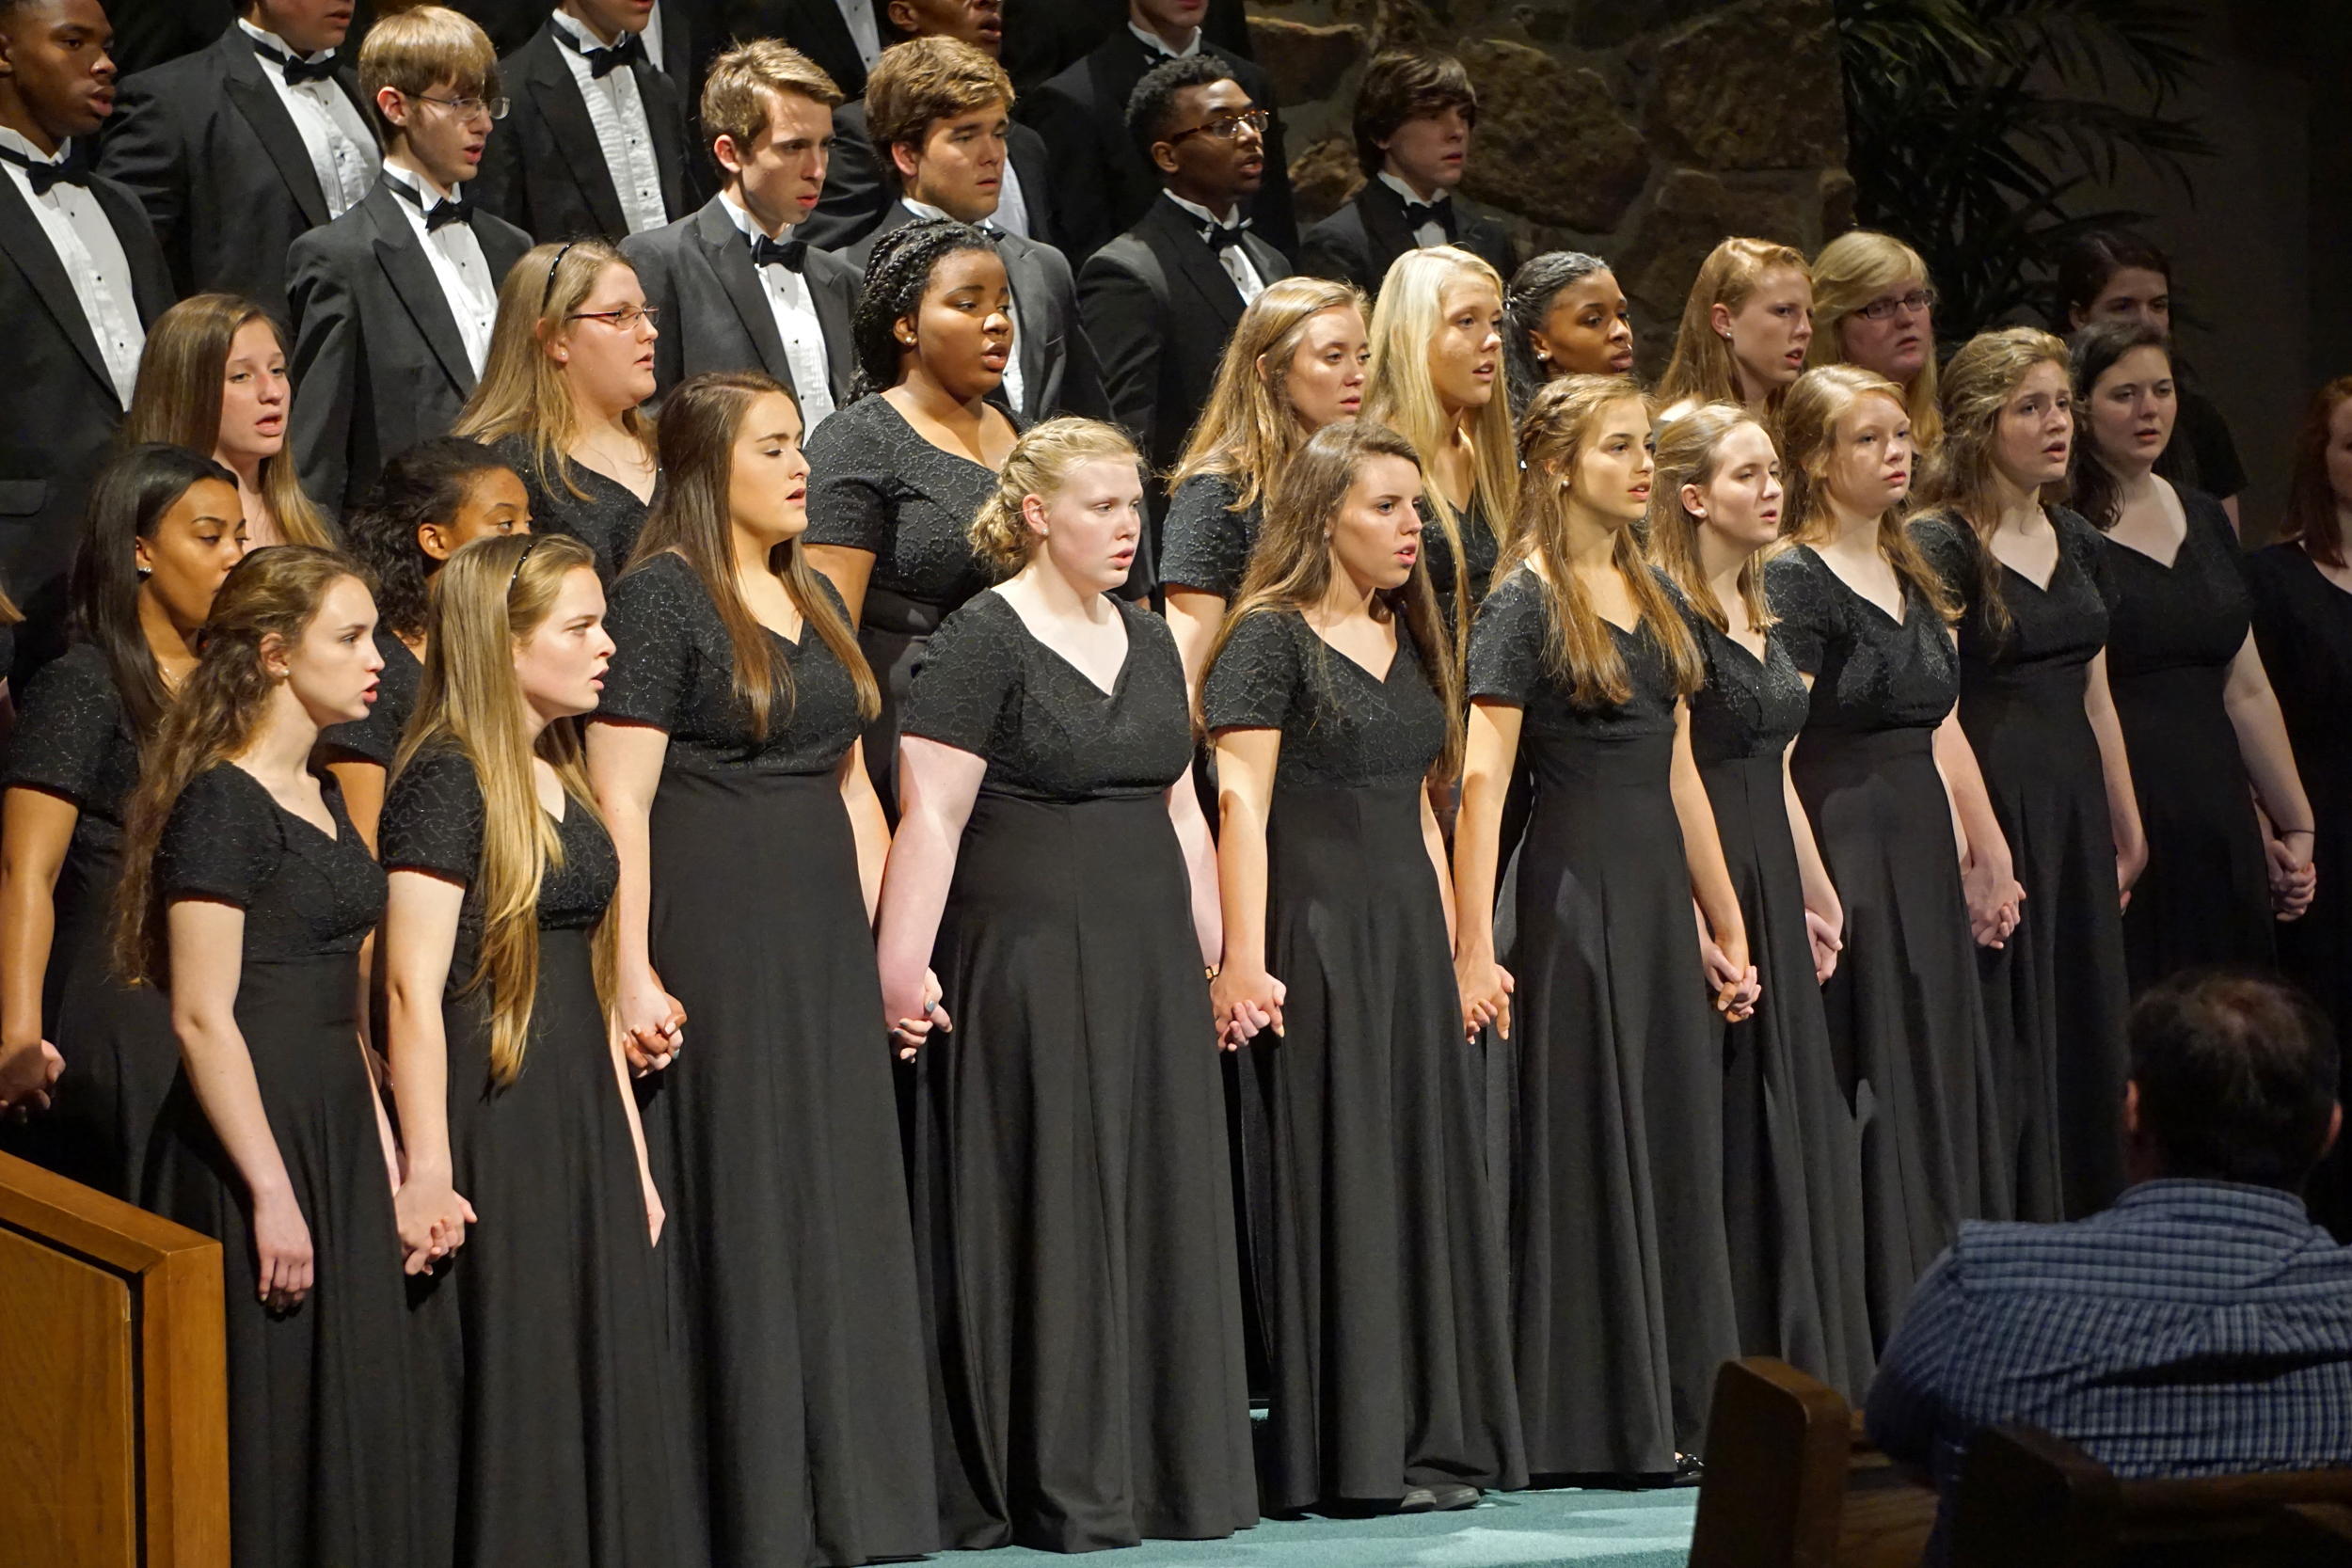 2015april26 ChorusSpringConcert30.jpg